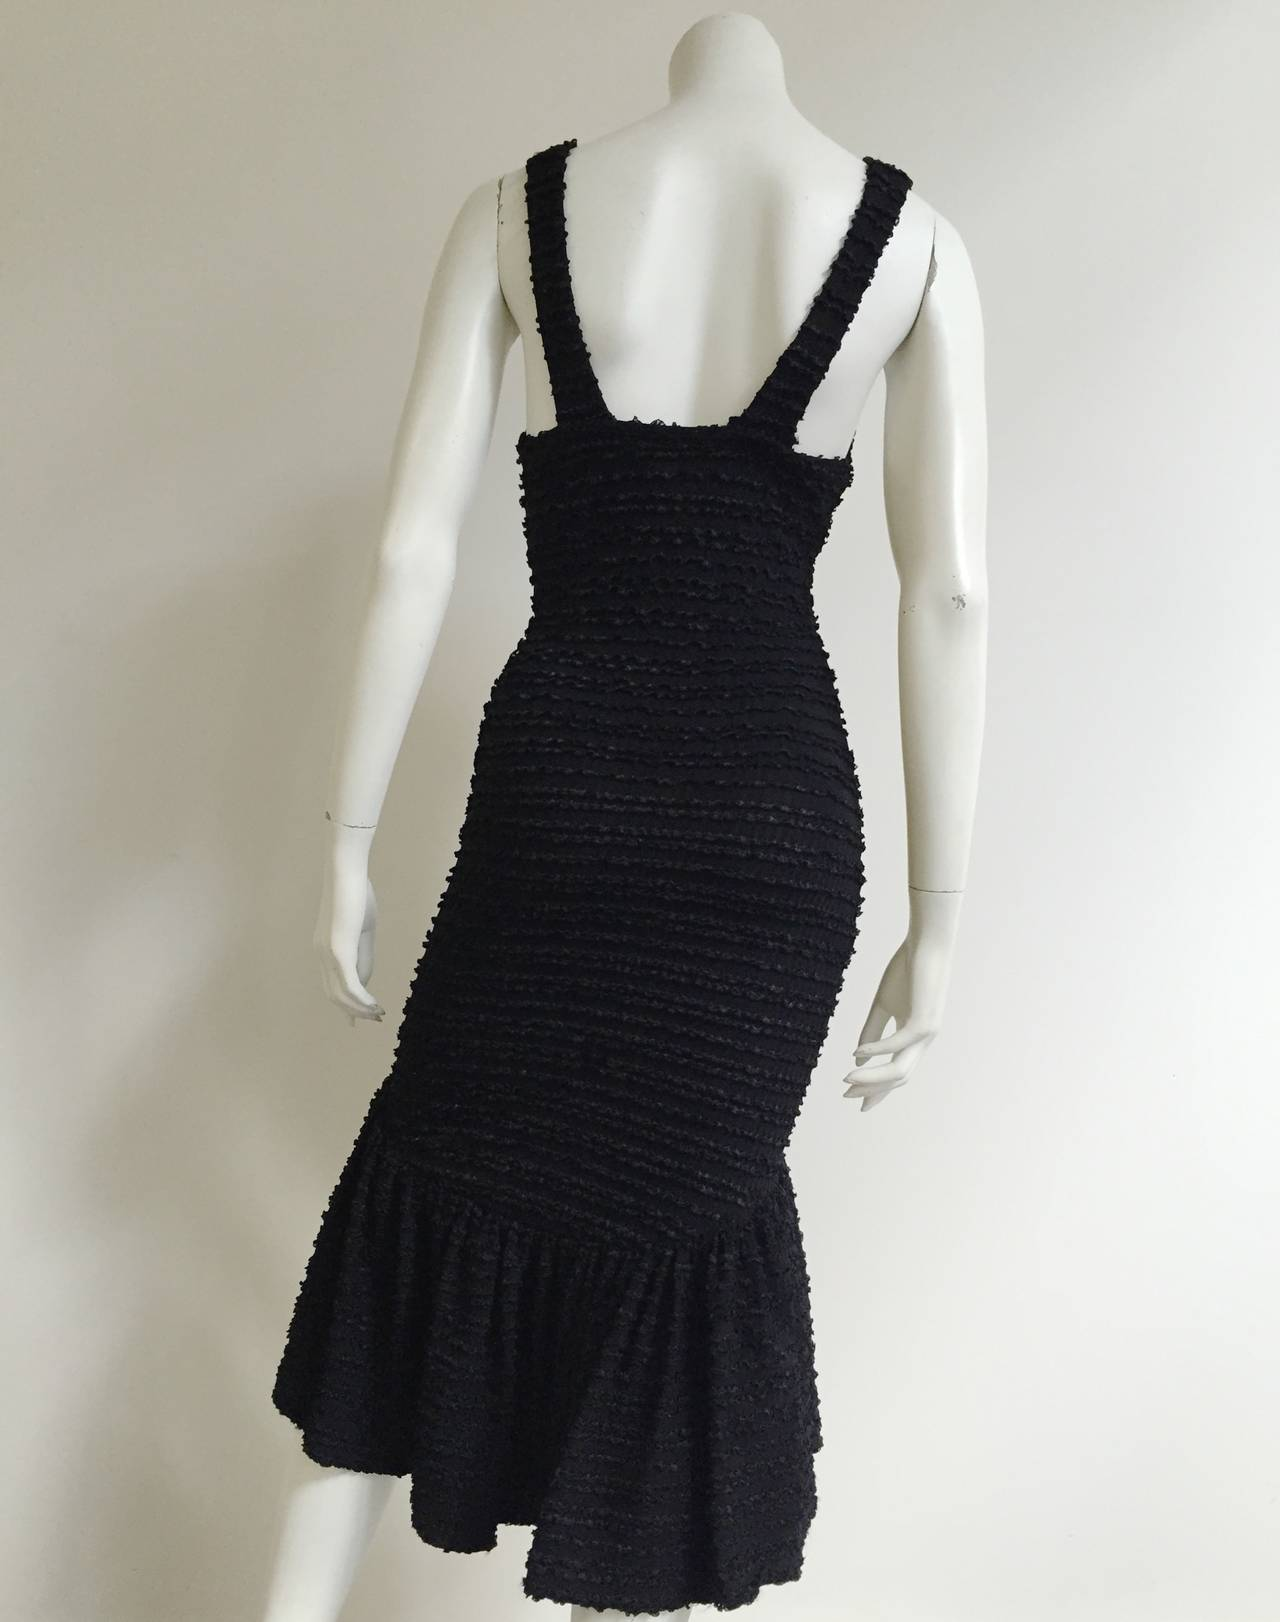 Patrick Kelly Paris 1986 Black Dress Size 4. 5